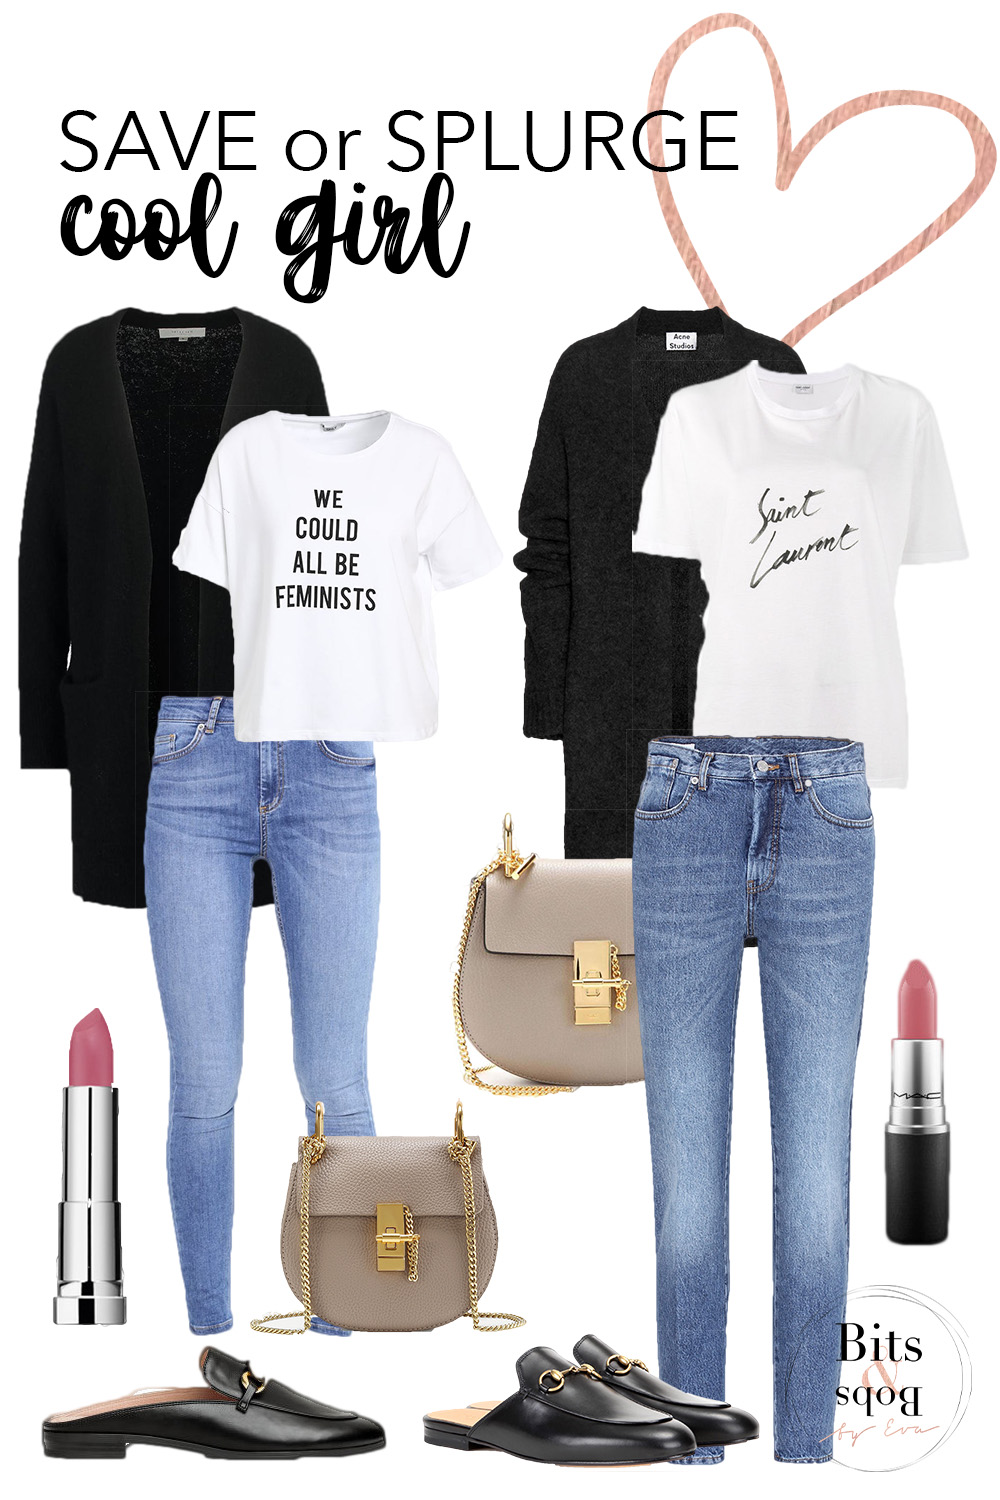 Save OR Splurge: Cool Girl auf Bits and Bobs by Eva